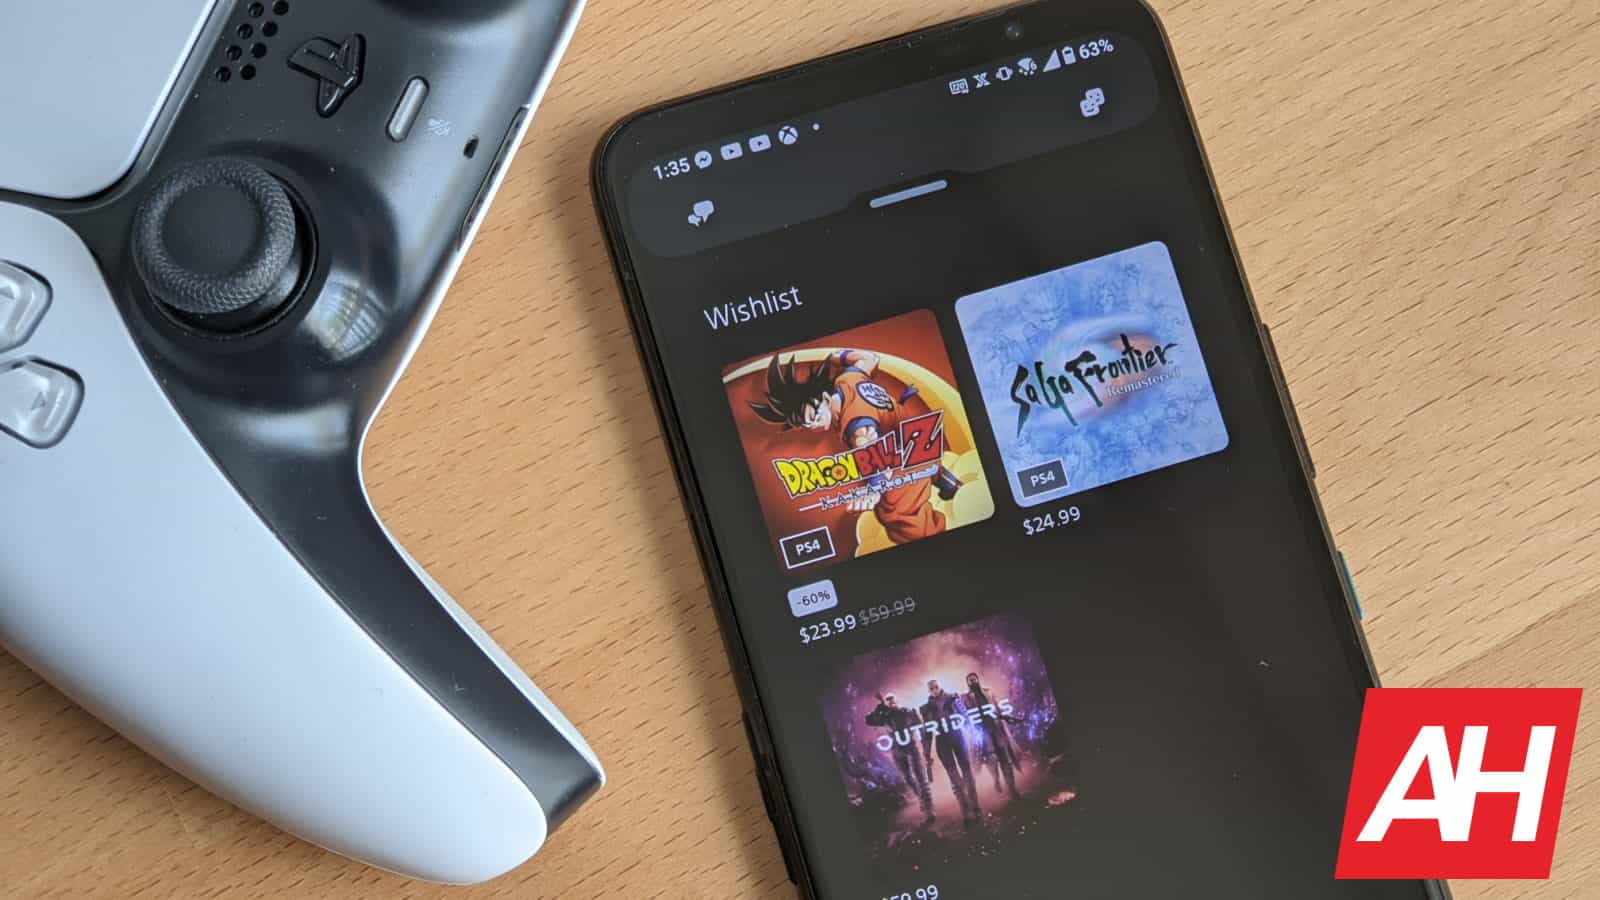 Sony shows its love for the PlayStation app with some new features